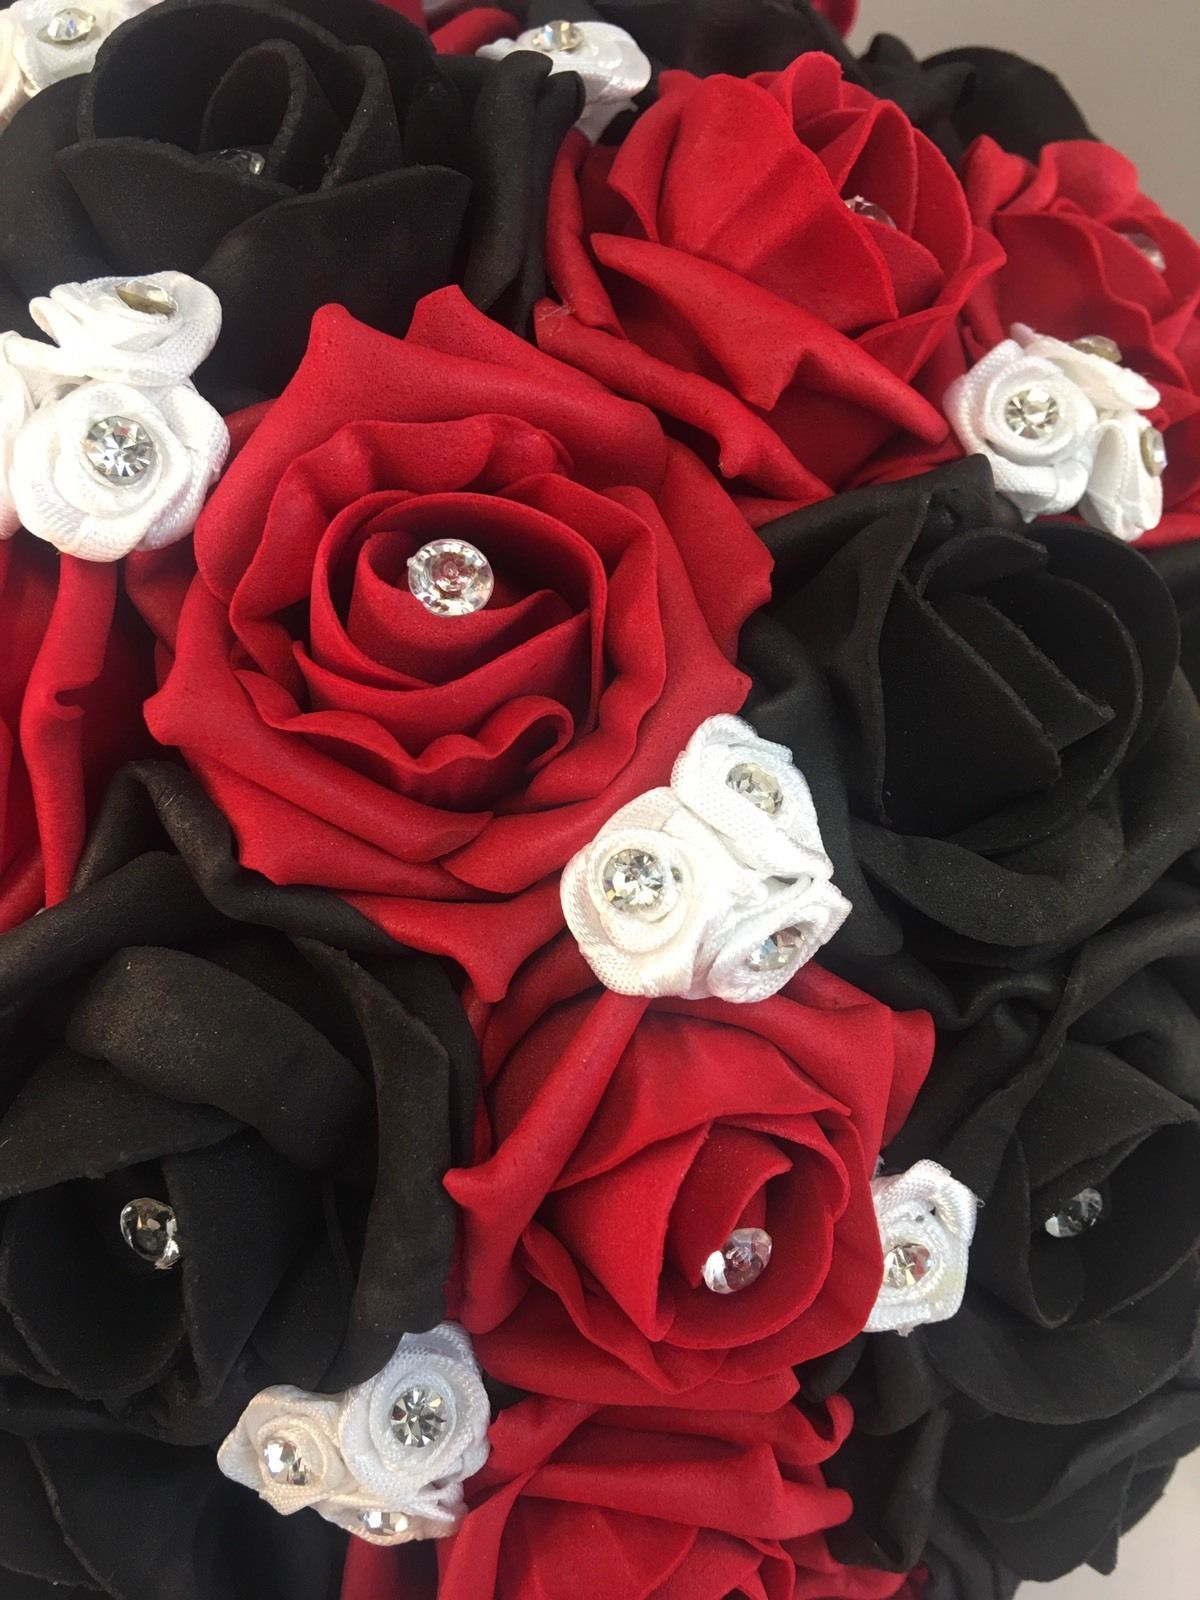 Wedding Supplies Home Furniture Diy Bridesmaid Black White Wedding Flowers Foam Rose Wedding Bouquet Posie Pettumtrampolines Es